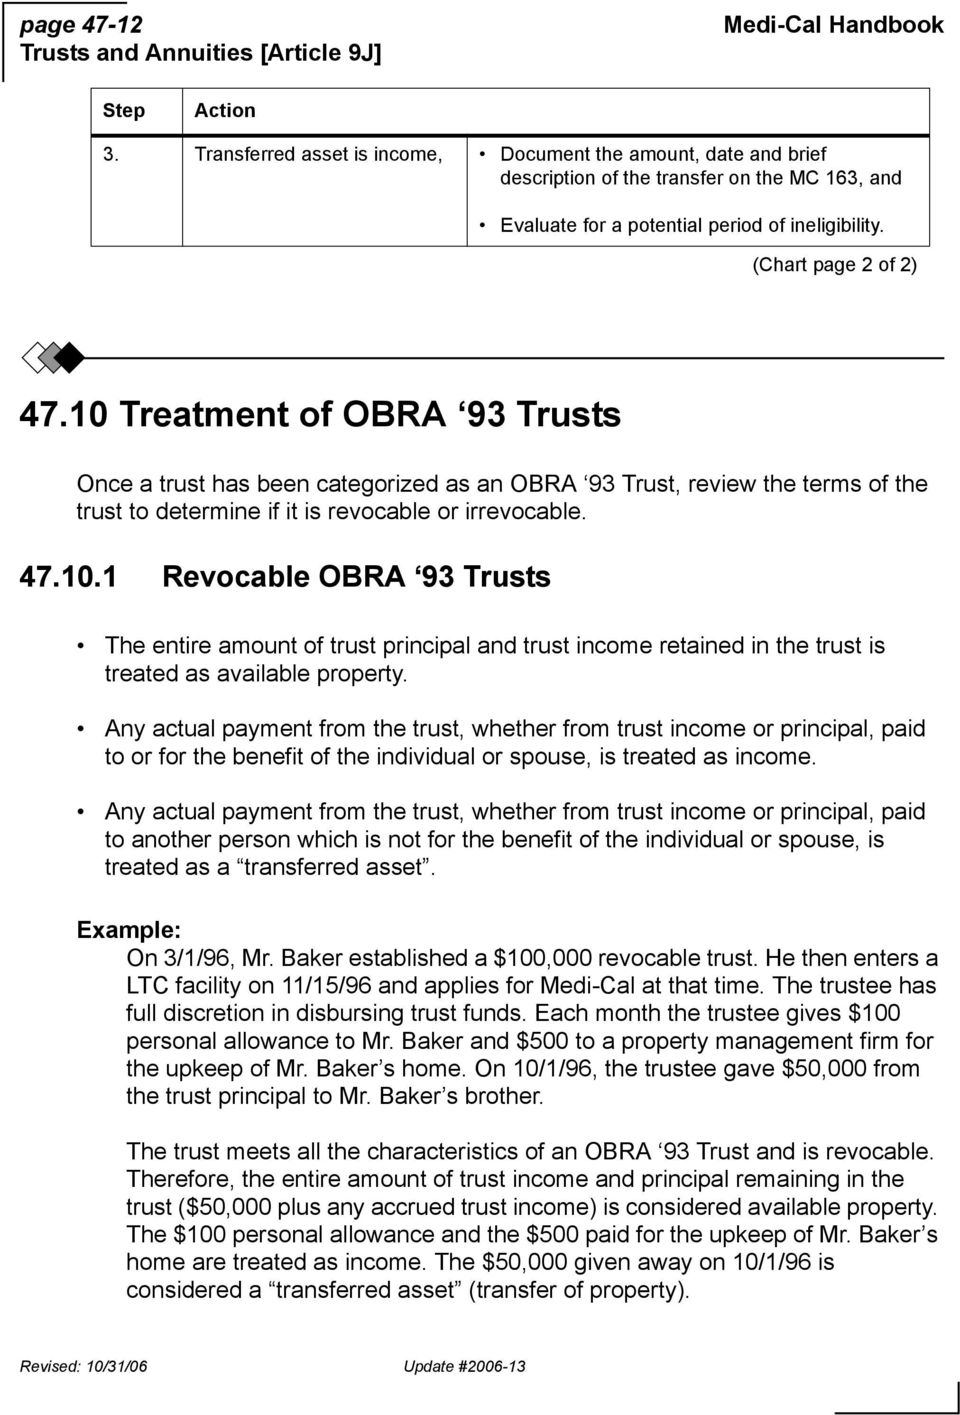 10 Treatment of OBRA 93 Trusts Once a trust has been categorized as an OBRA 93 Trust, review the terms of the trust to determine if it is revocable or irrevocable. 47.10.1 Revocable OBRA 93 Trusts The entire amount of trust principal and trust income retained in the trust is treated as available property.